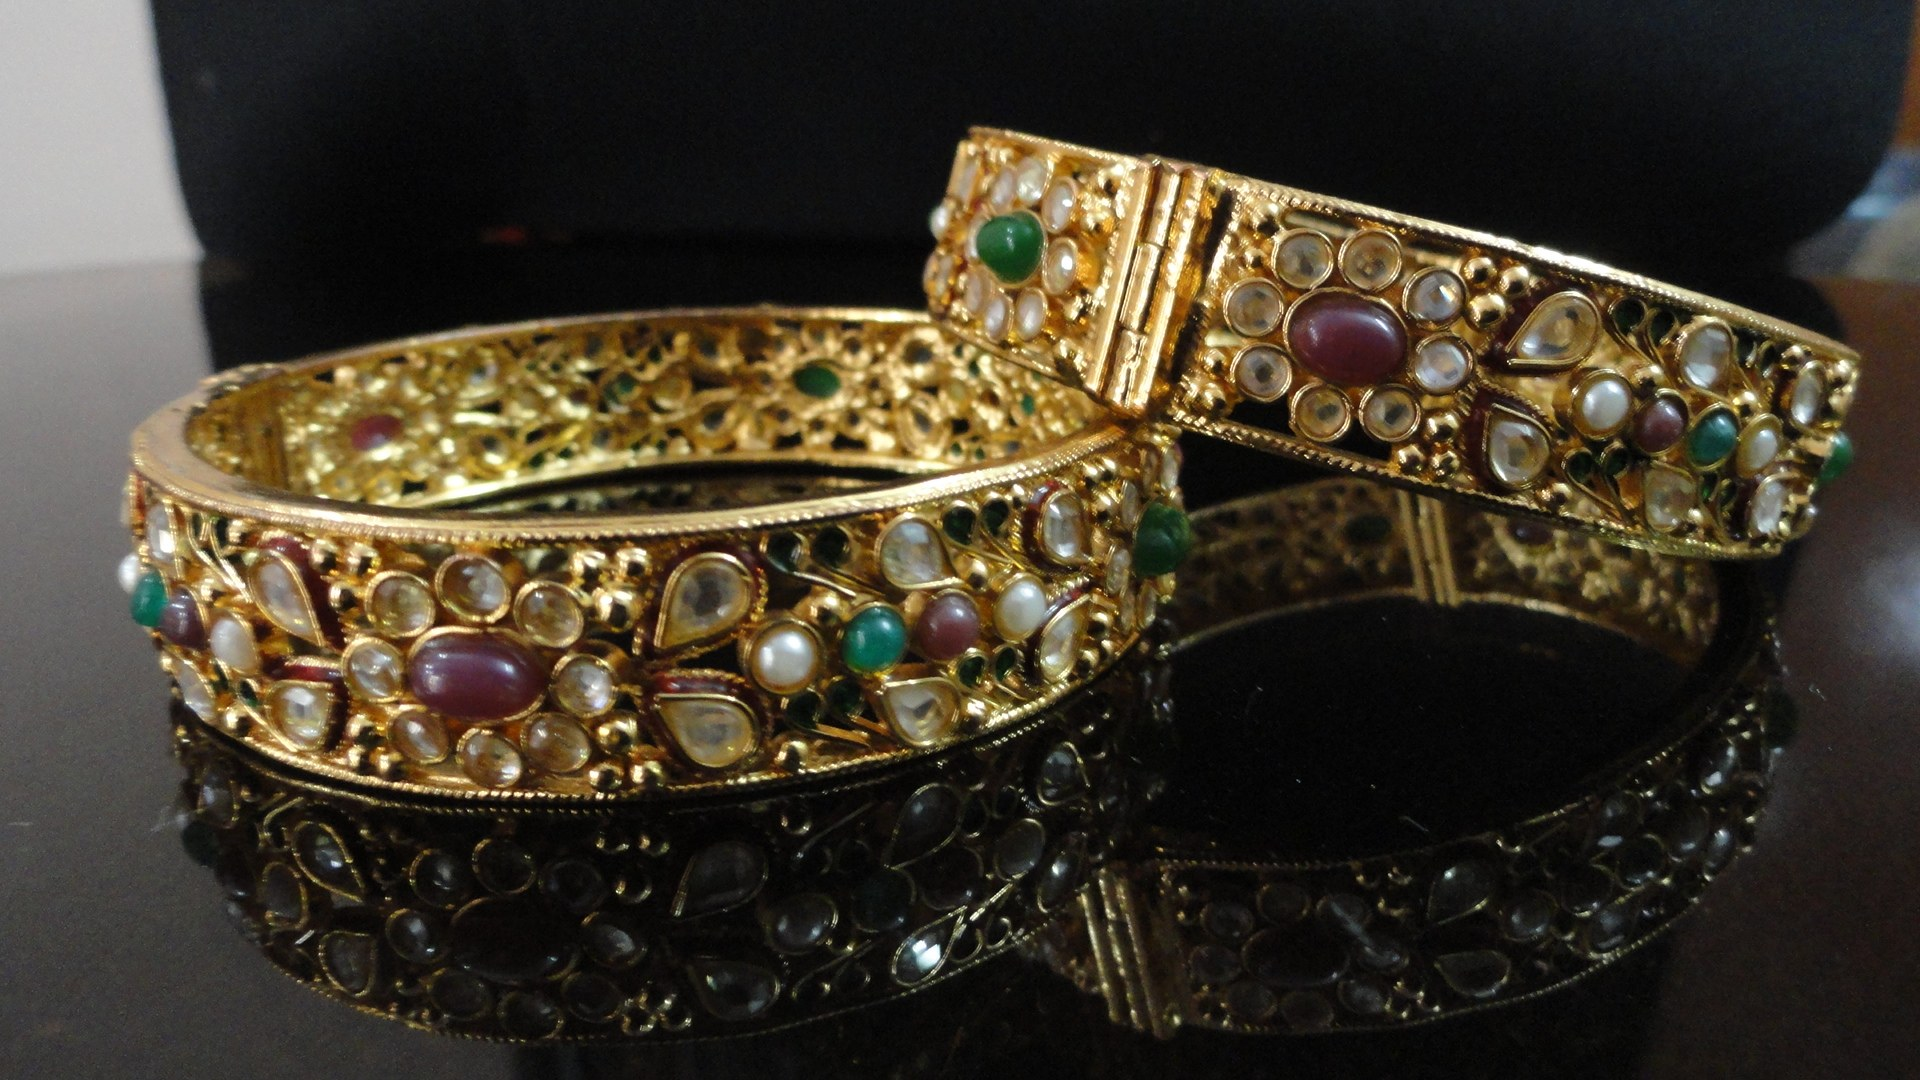 bangle jewelry hd wallpapers for background full free 652